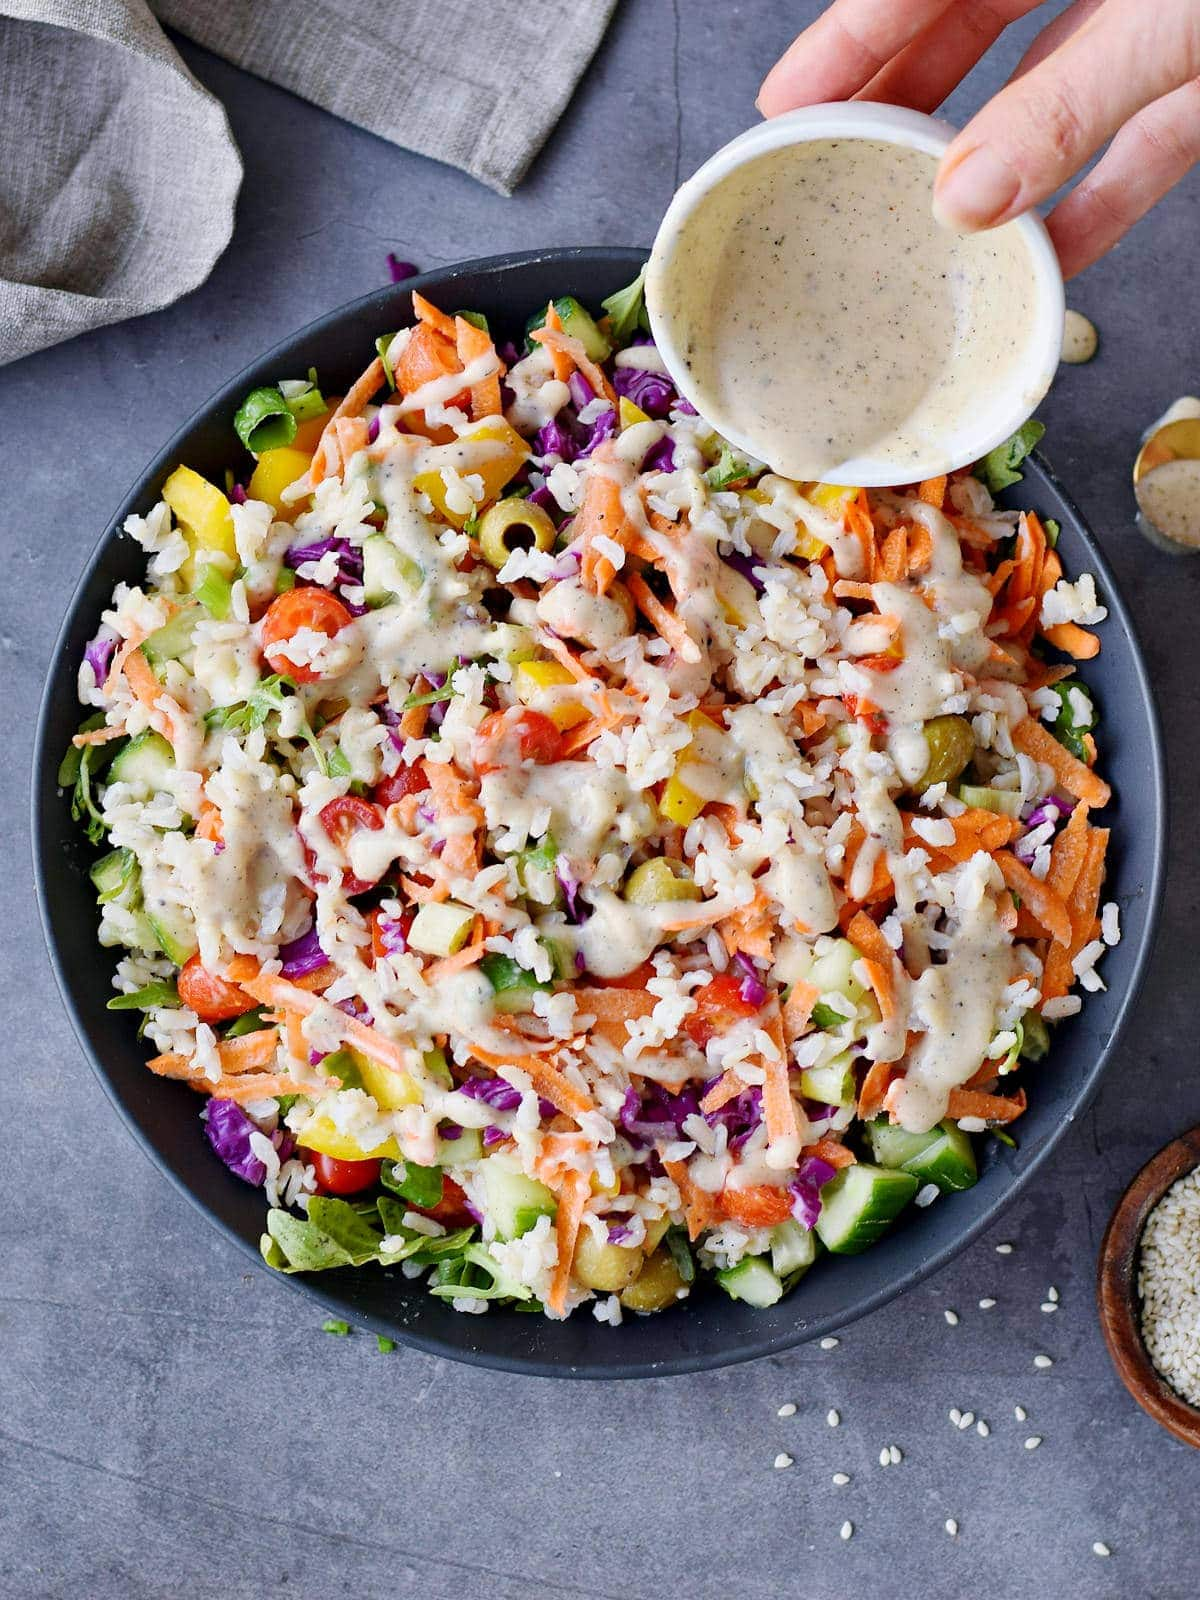 pouring dressing over cold rice salad with veggies in bowl